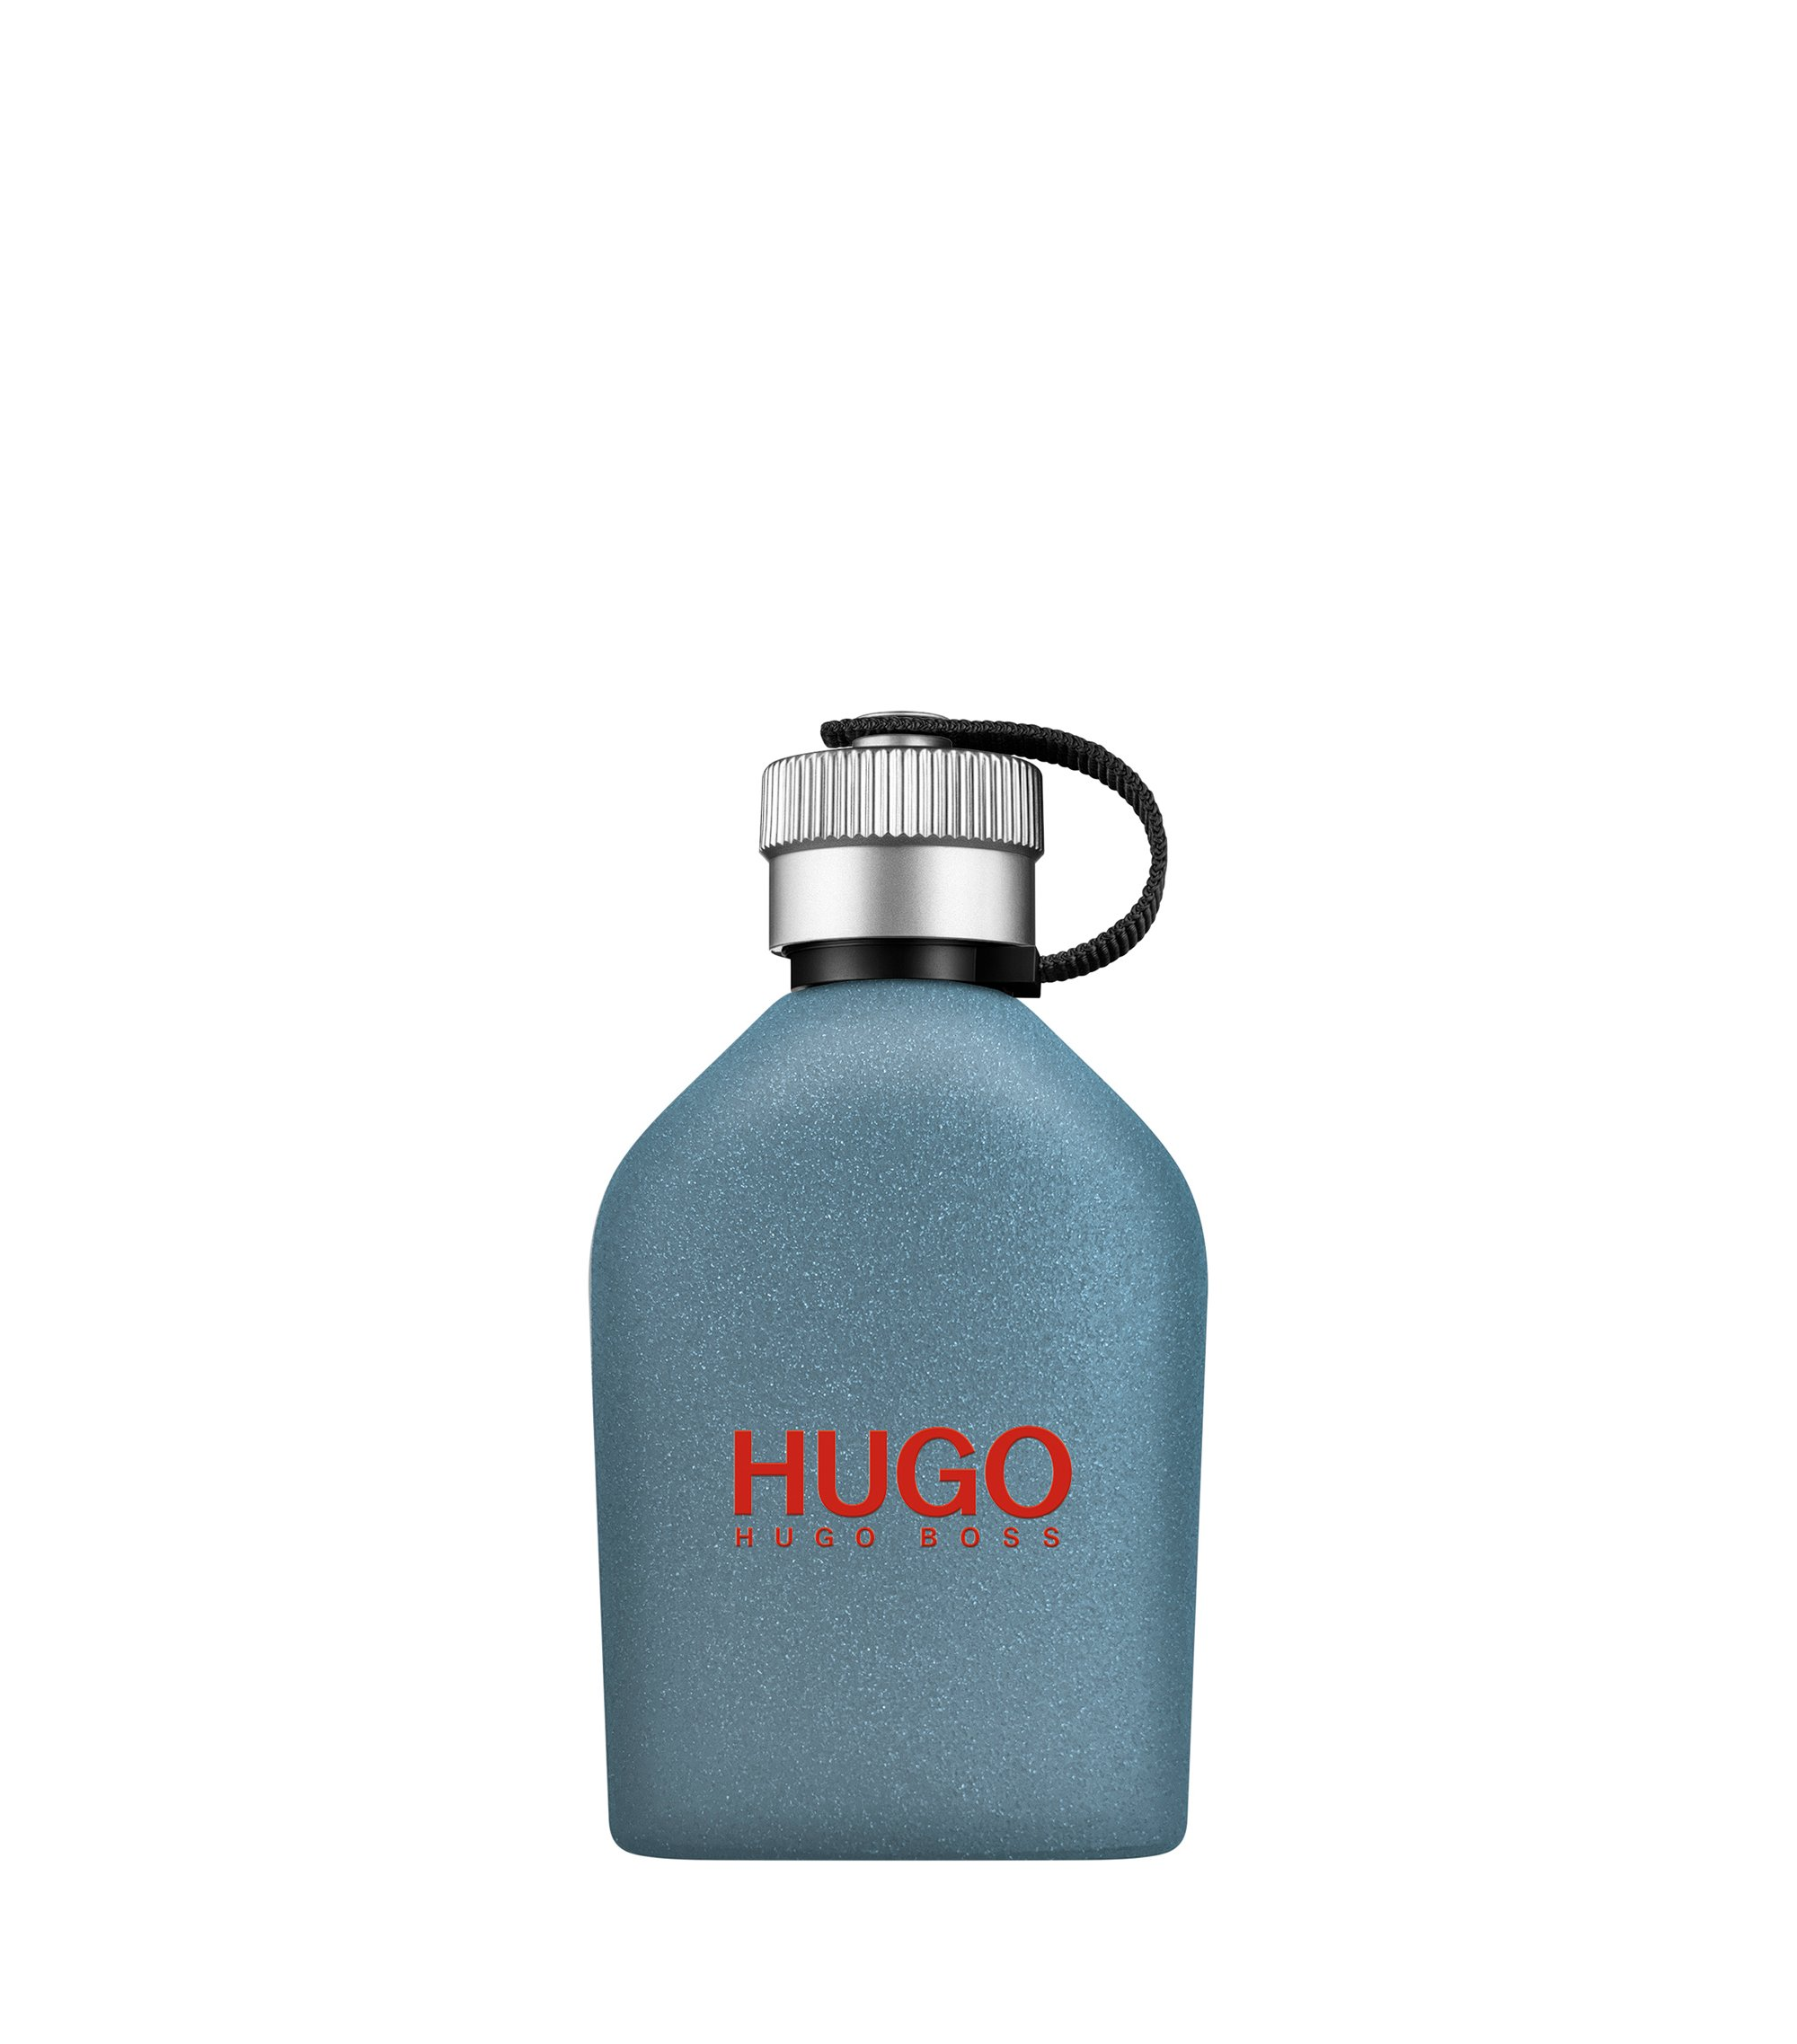 HUGO Urban Journey eau de toilette da 125 ml, Assorted-Pre-Pack